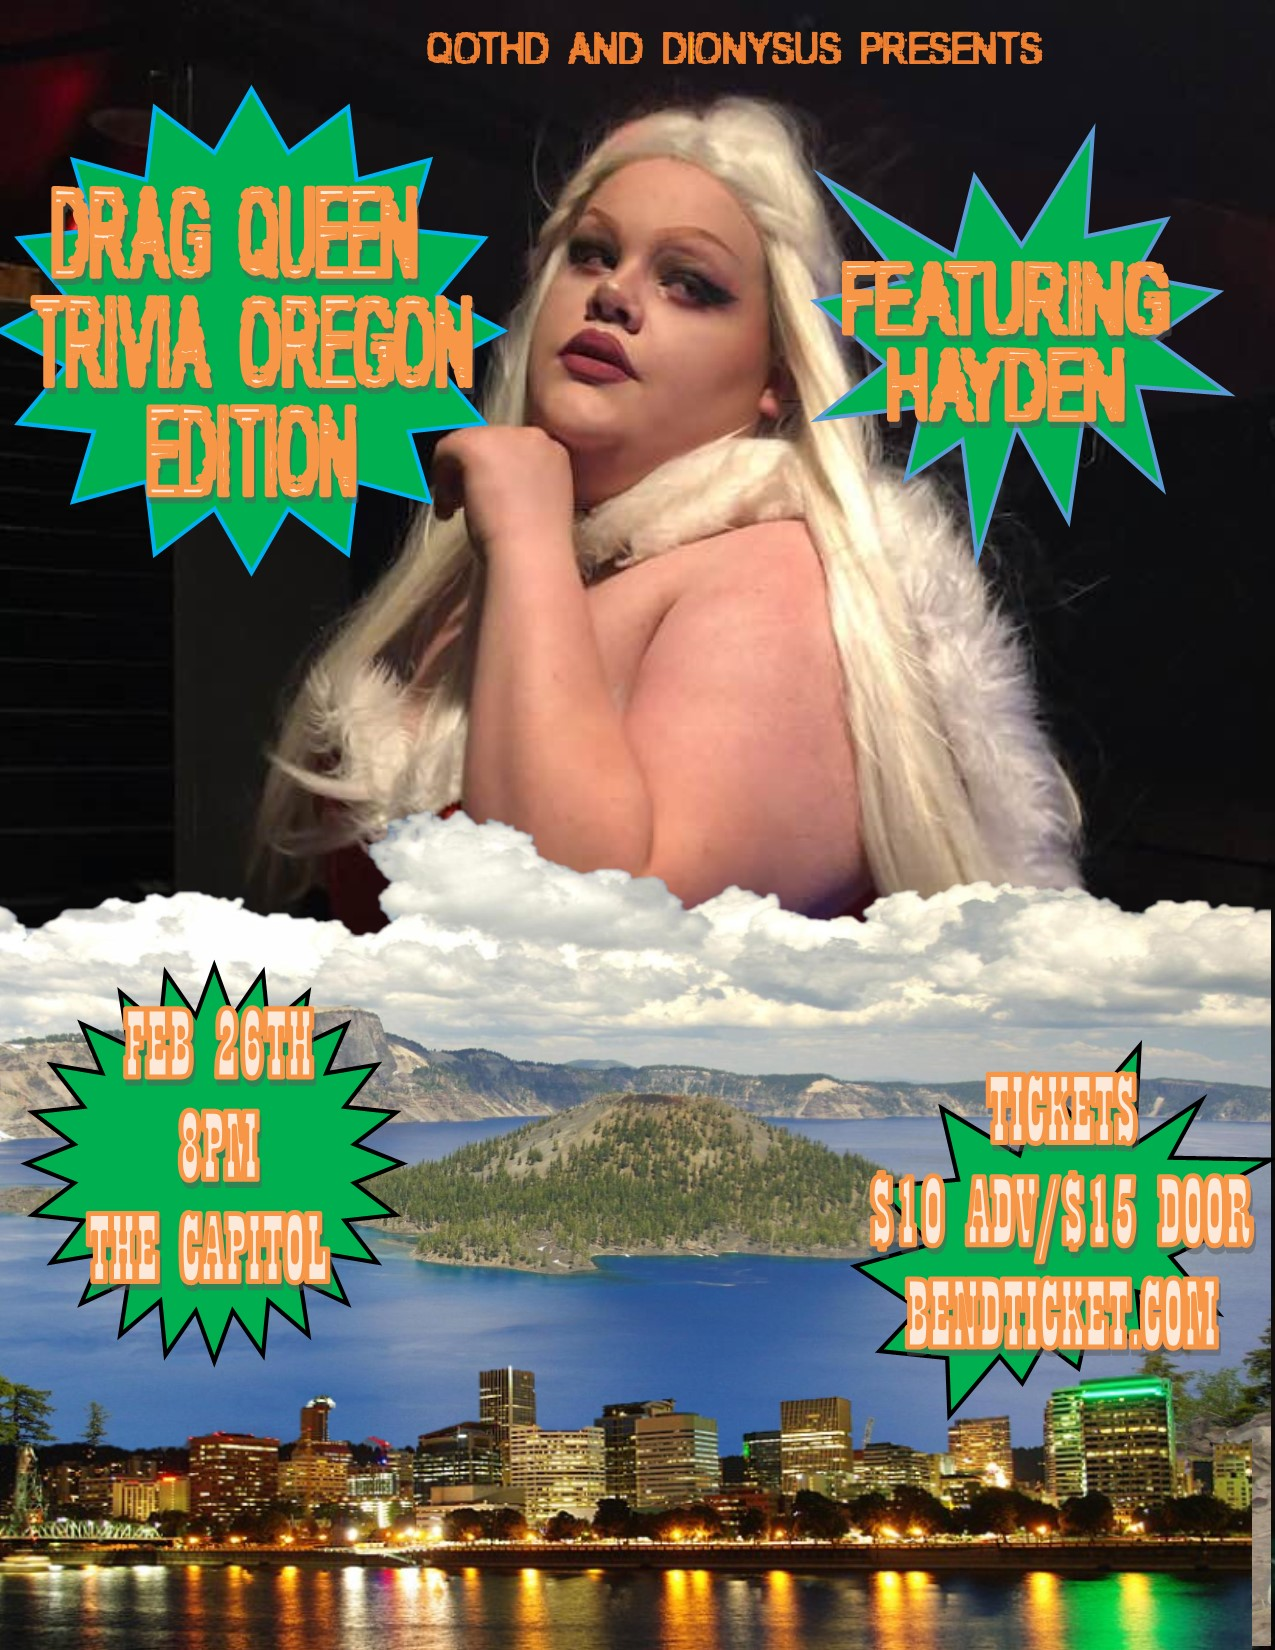 Drag Queen Trivia: OREGON EDITION Tickets   The Capitol   Bend, OR   Tue,  Feb 26 from 8pm - 9:30pm   Bend Ticket